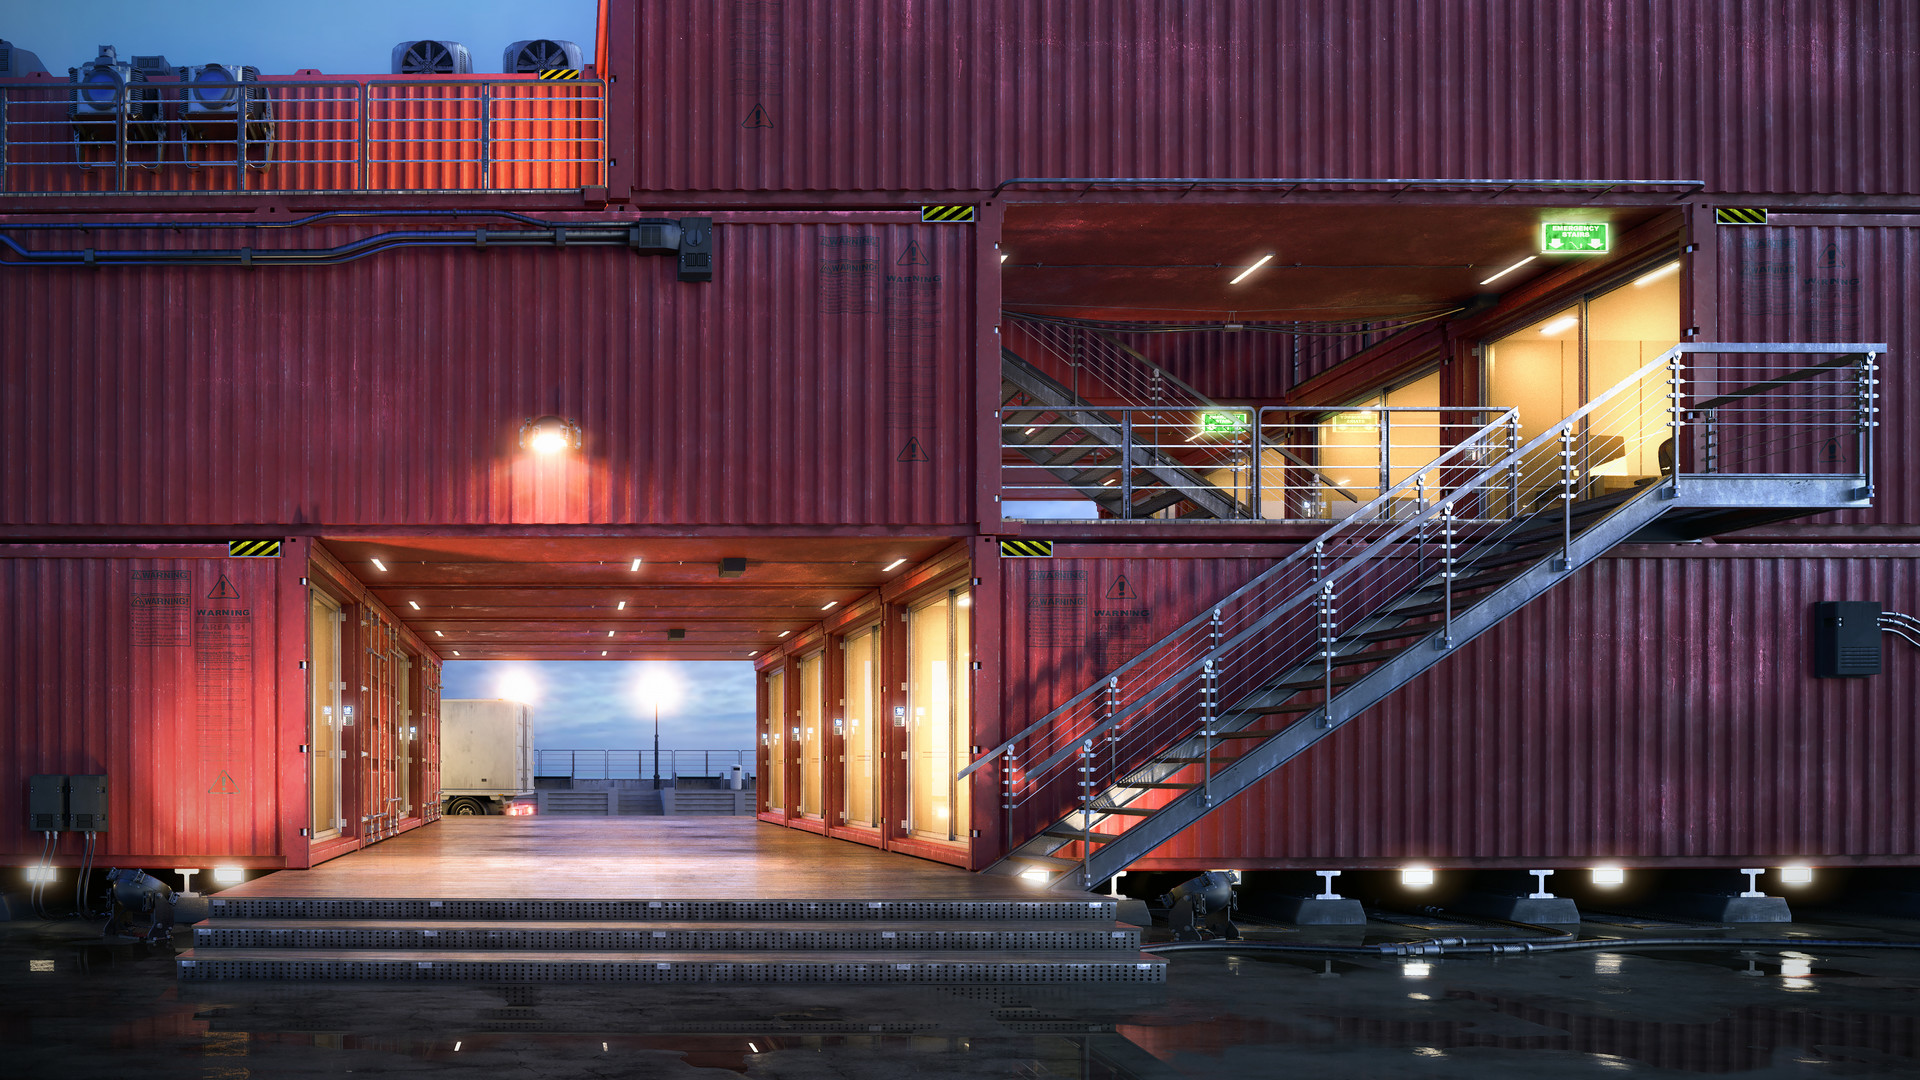 container_structure.jpg